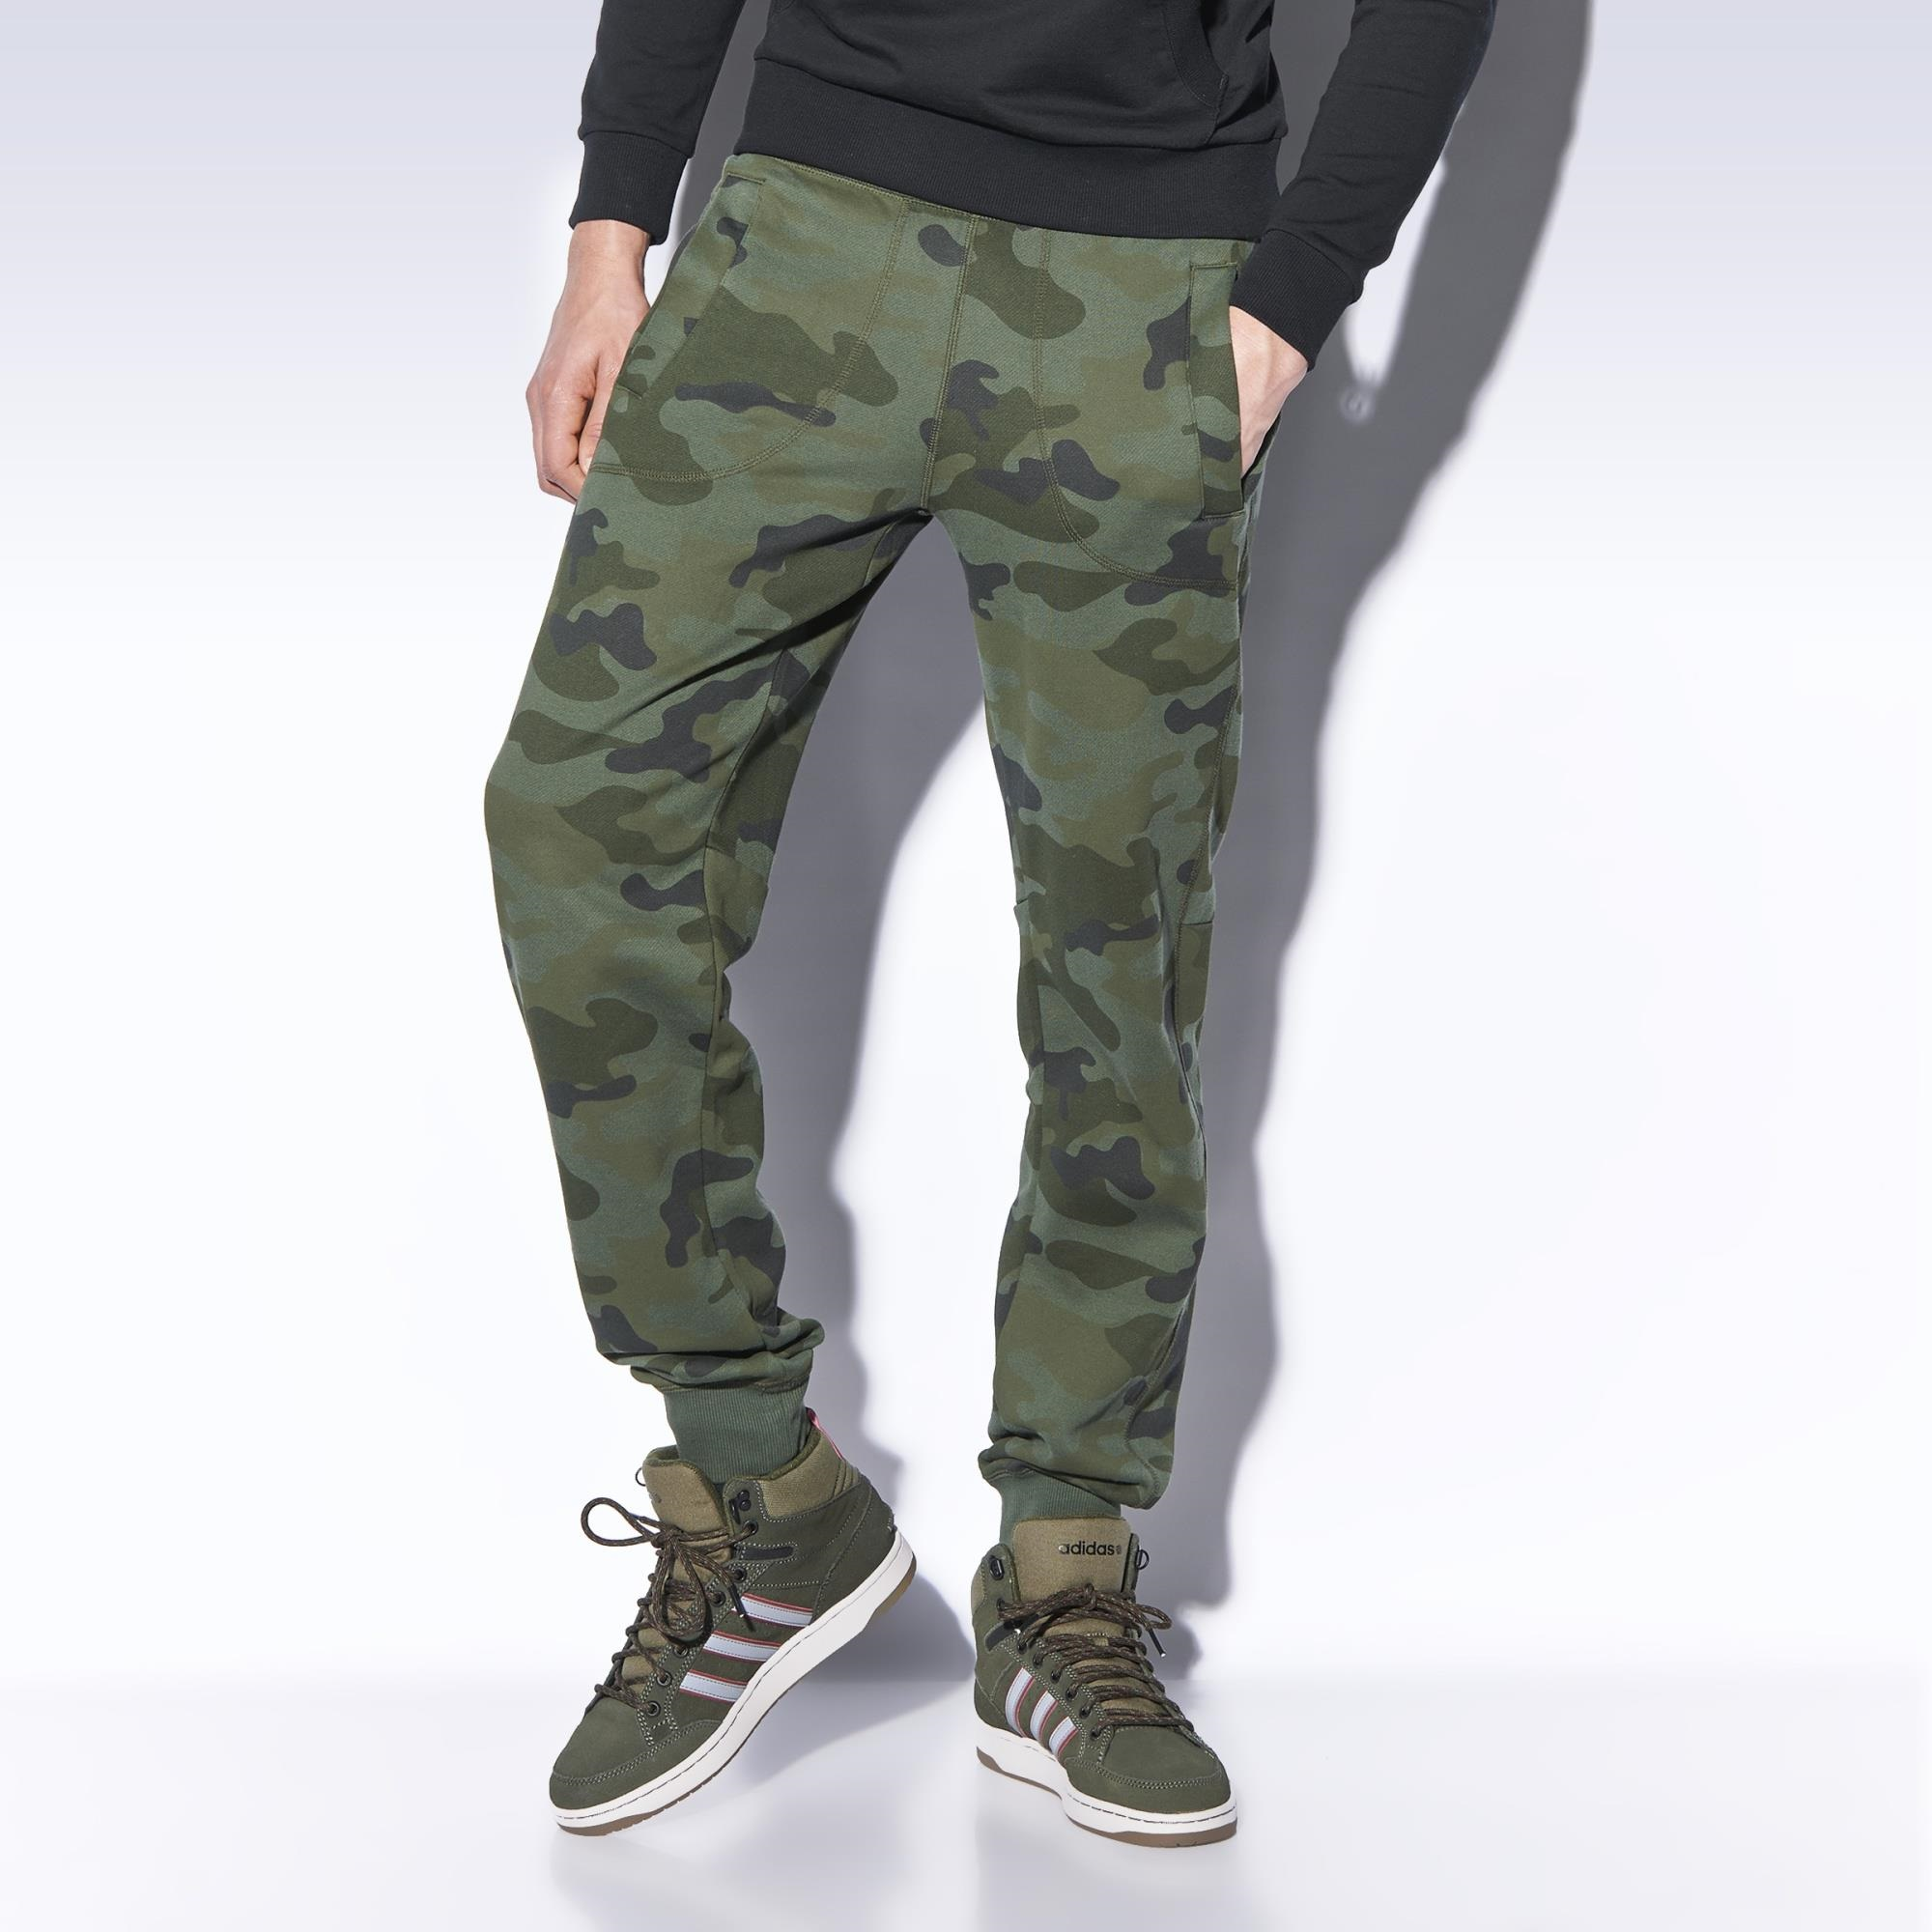 Innovative Shop Nike Store For Womens Shoes, Clothing And EquipmentThat  SwooshShop All The Major Brand From Nike, Adidas, Reebok Search Results For Camo On Dallas Cowboys Pro ShopName From The Pink Camo Nike Womens Name Of The